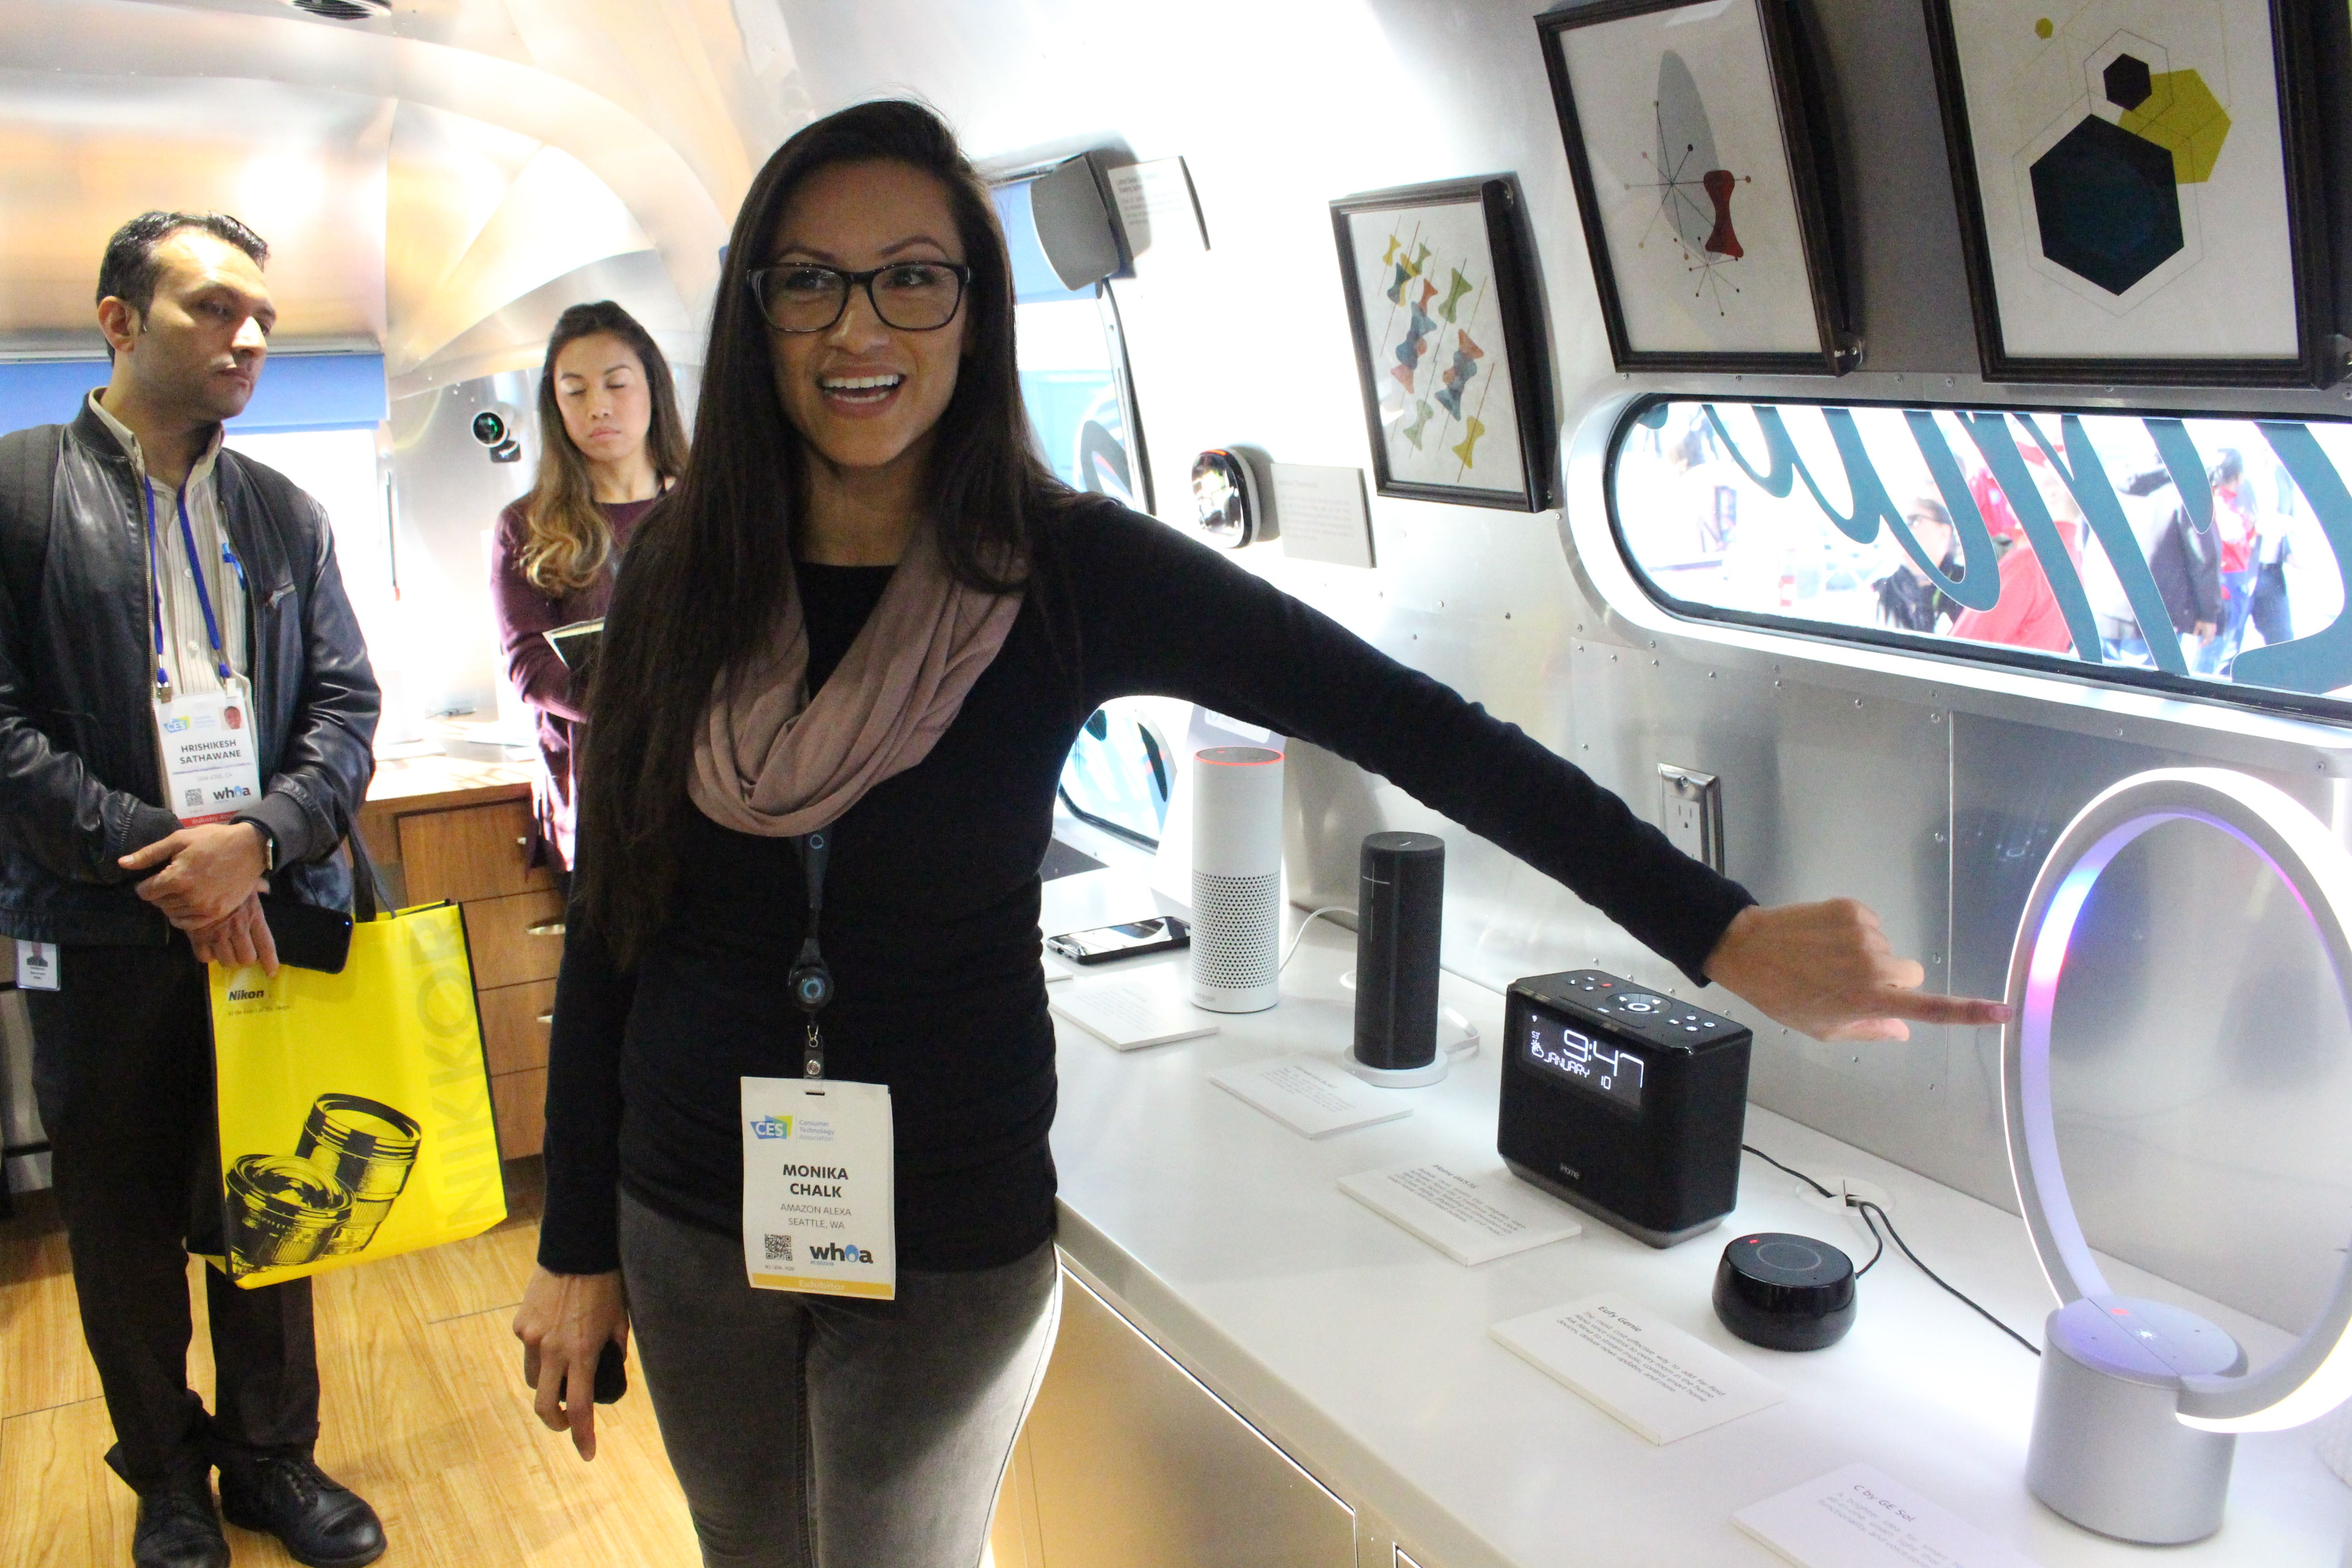 Monika Chalk of the Amazon Alexa team demonstrates an array of devices infused the company's artificial intelligence in a Roadshow trailer parked at the Consumer Electronics Show in Las Vegas, January 10, 2018.